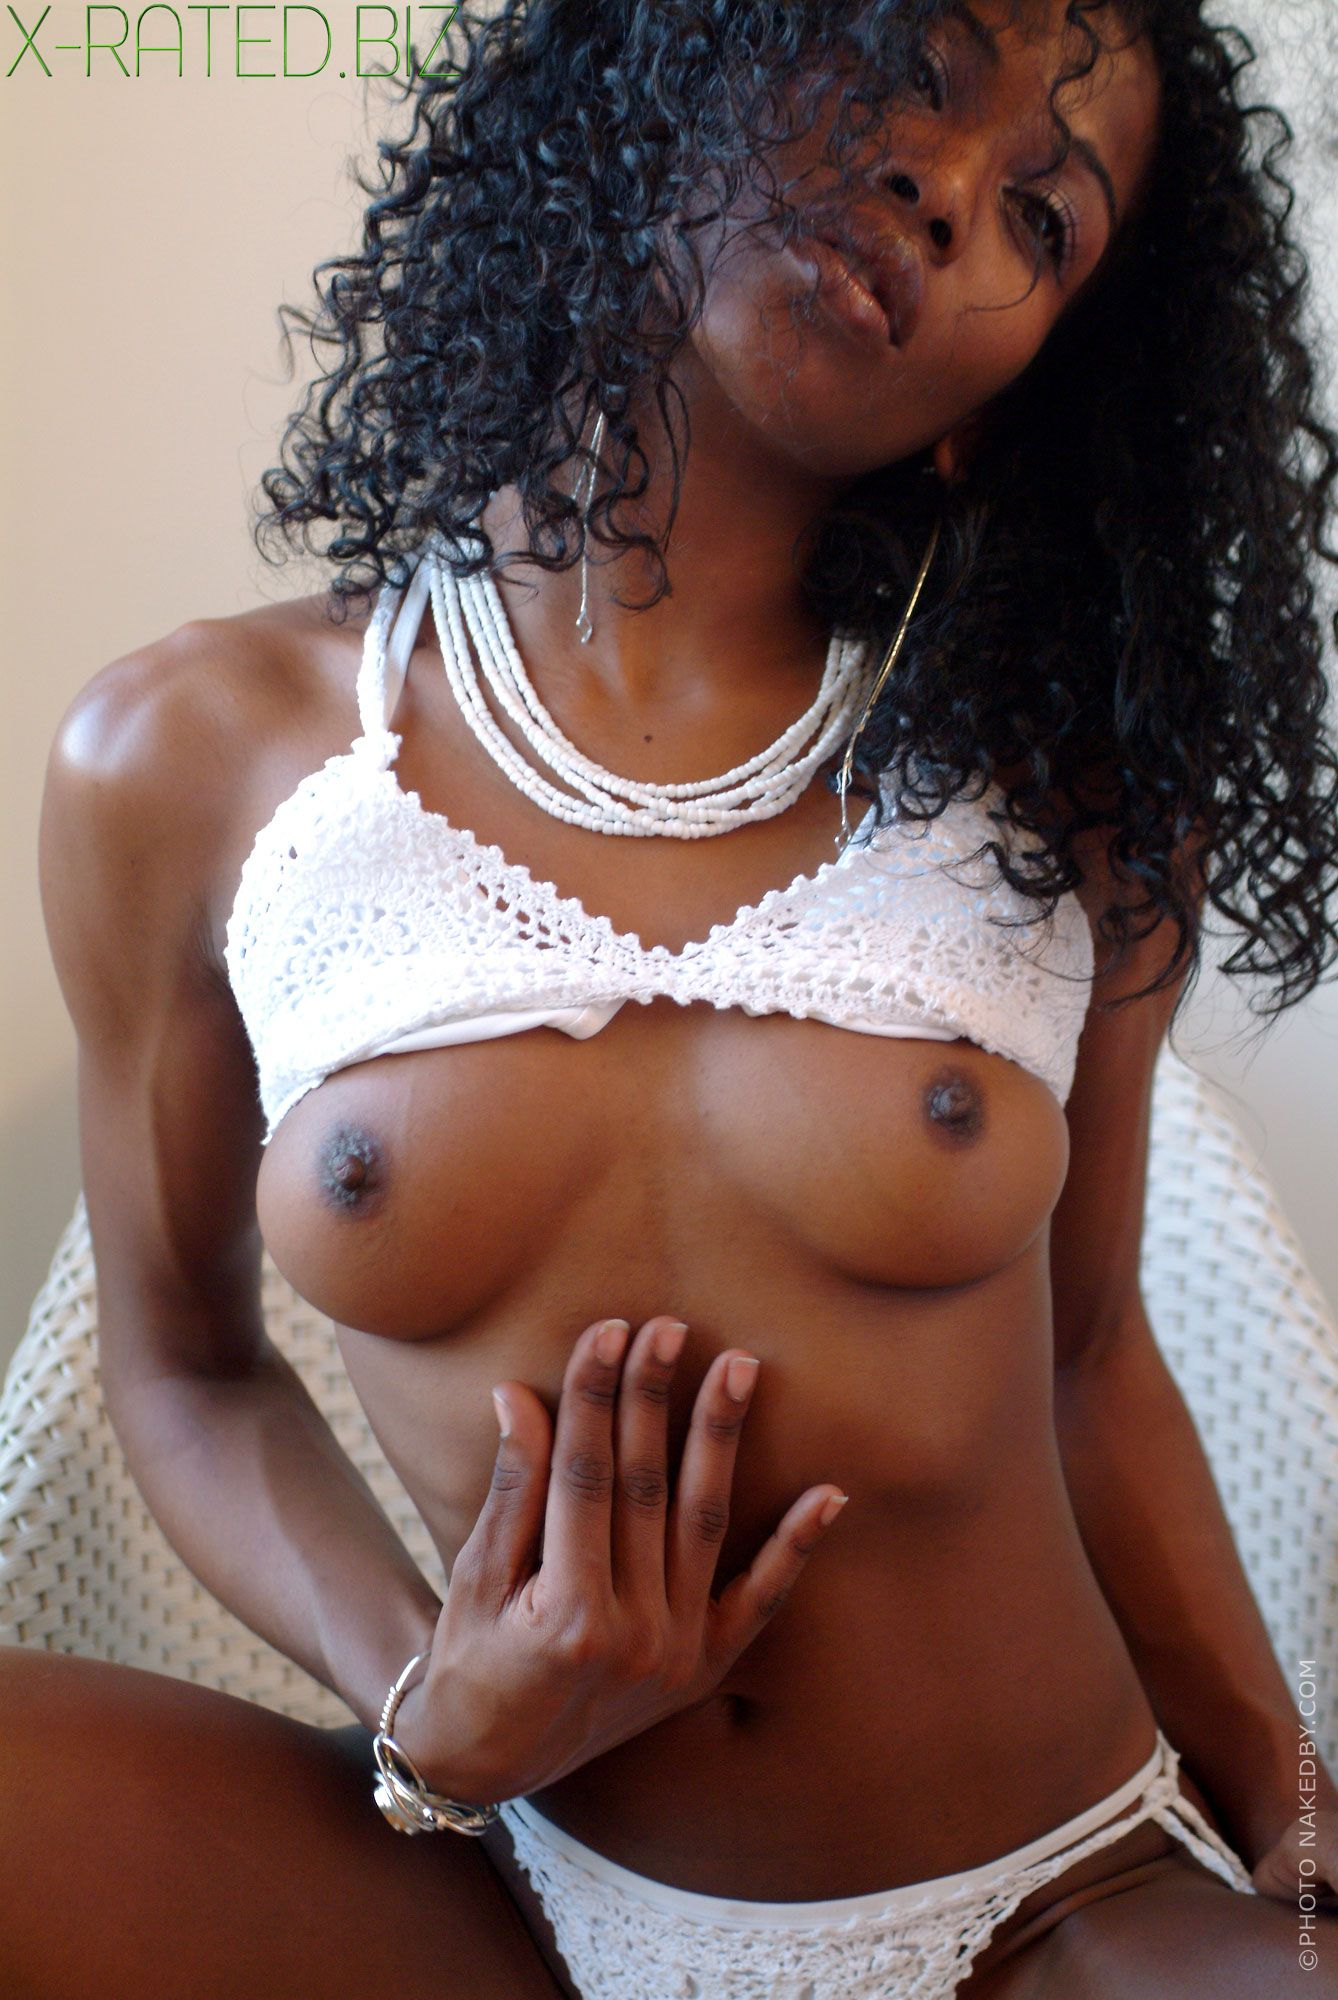 daddys little girl pussy